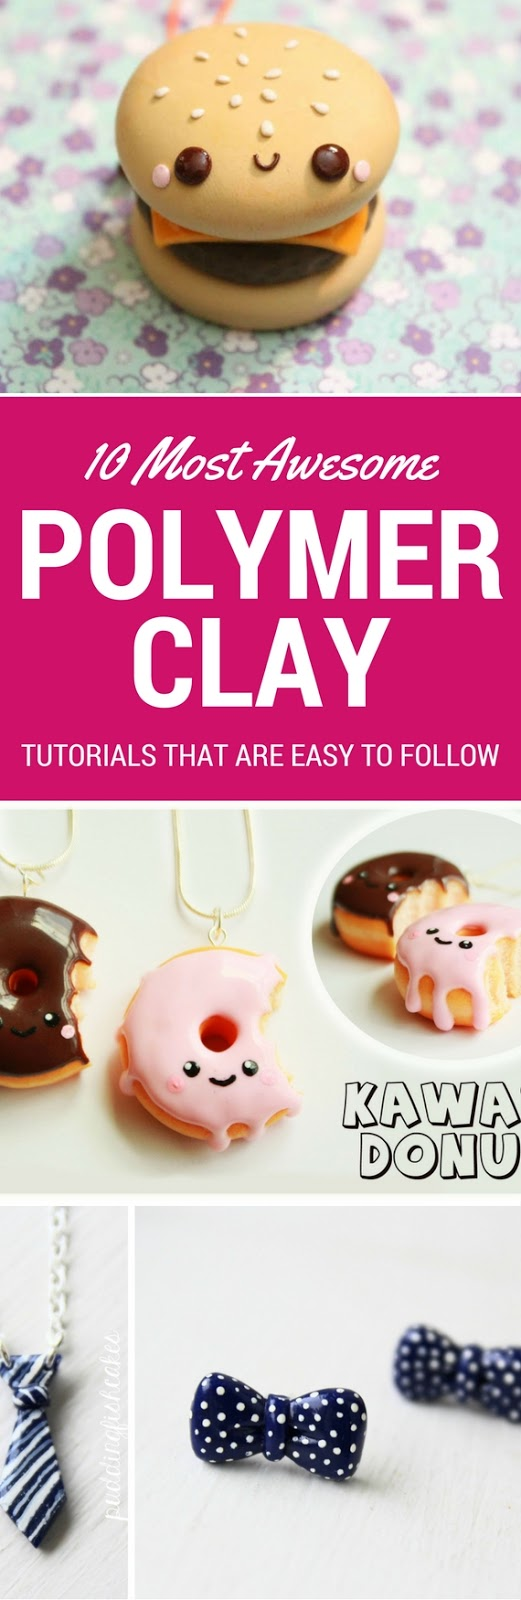 10 Polymer Clay Tutorials Step By Step Anyone Can Follow - Polymer Clay, Polymer Clay Charms, Polymer Clay Charm Tutorials, DIY Crafts, DIY Ideas, Polymer Clay Ideas